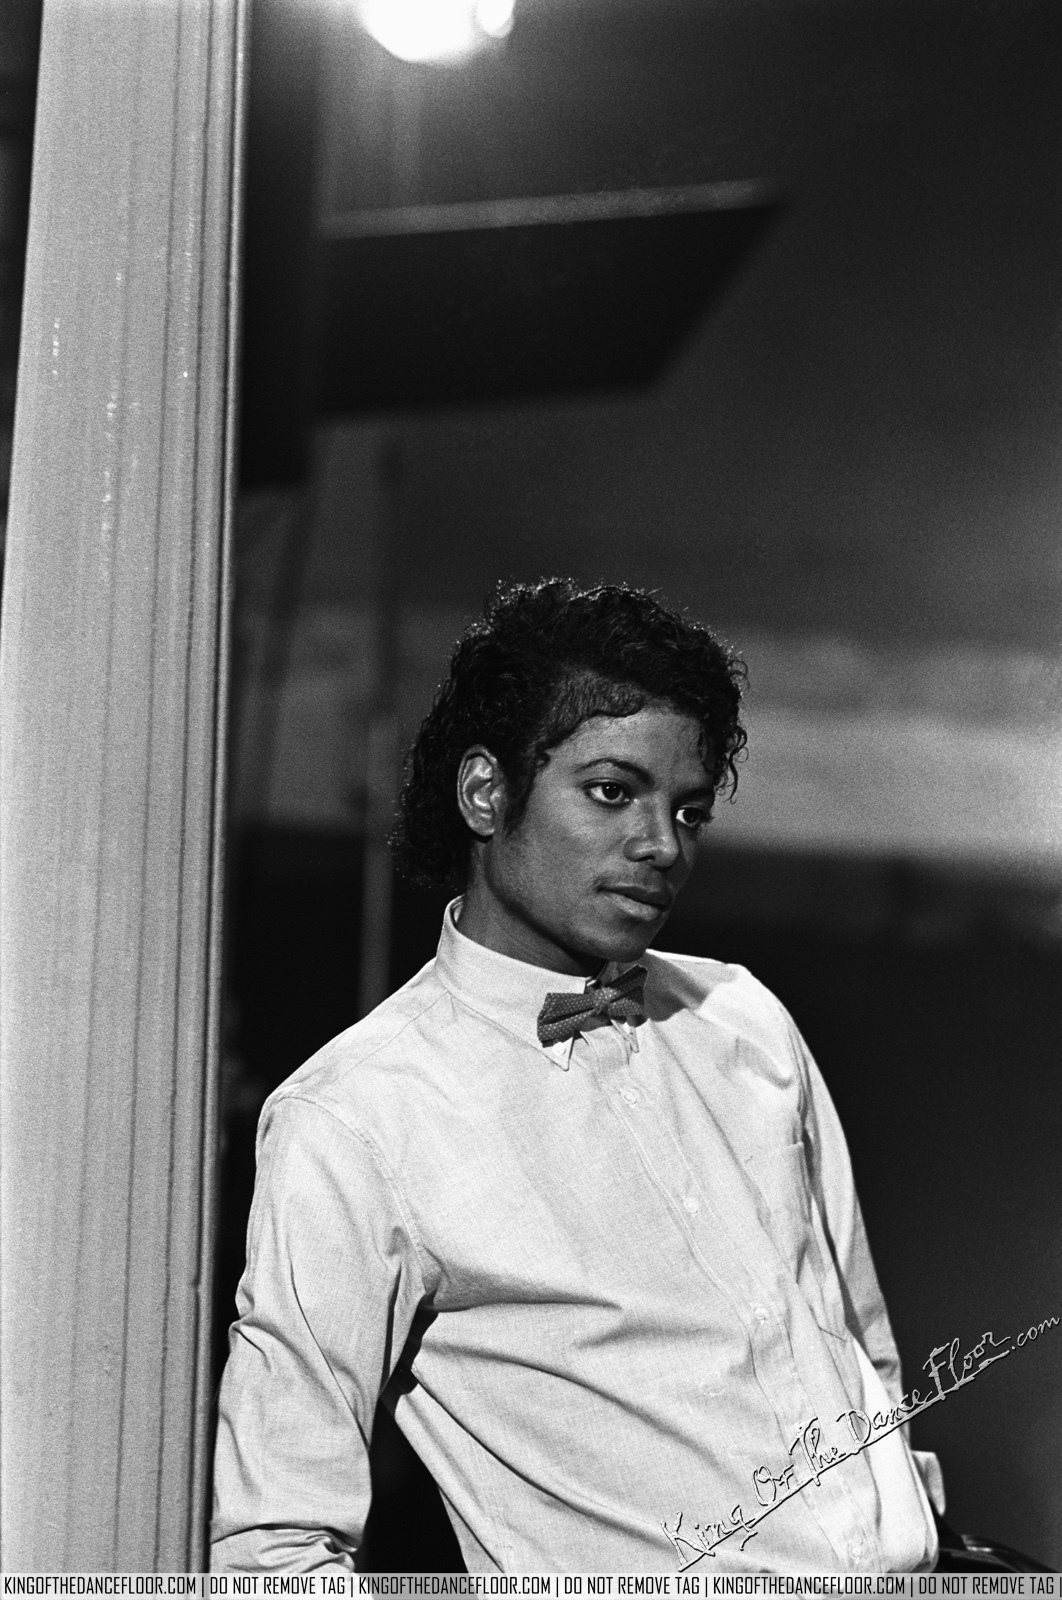 billie-jean-michael-jackson-22988064-1062-1600